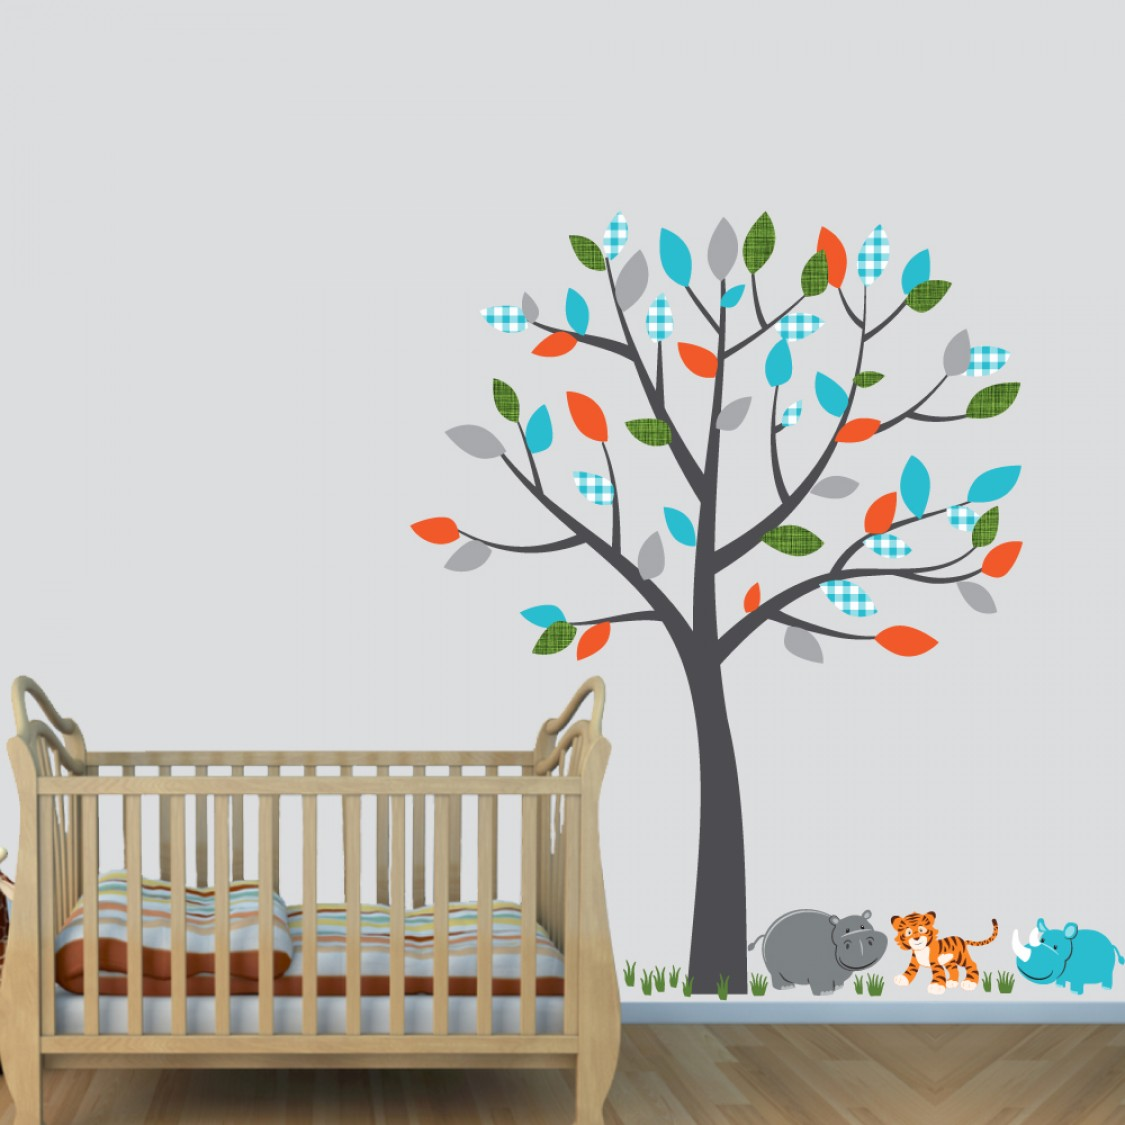 Colorful Wall Decals Safari With Tiger Decals For Boys